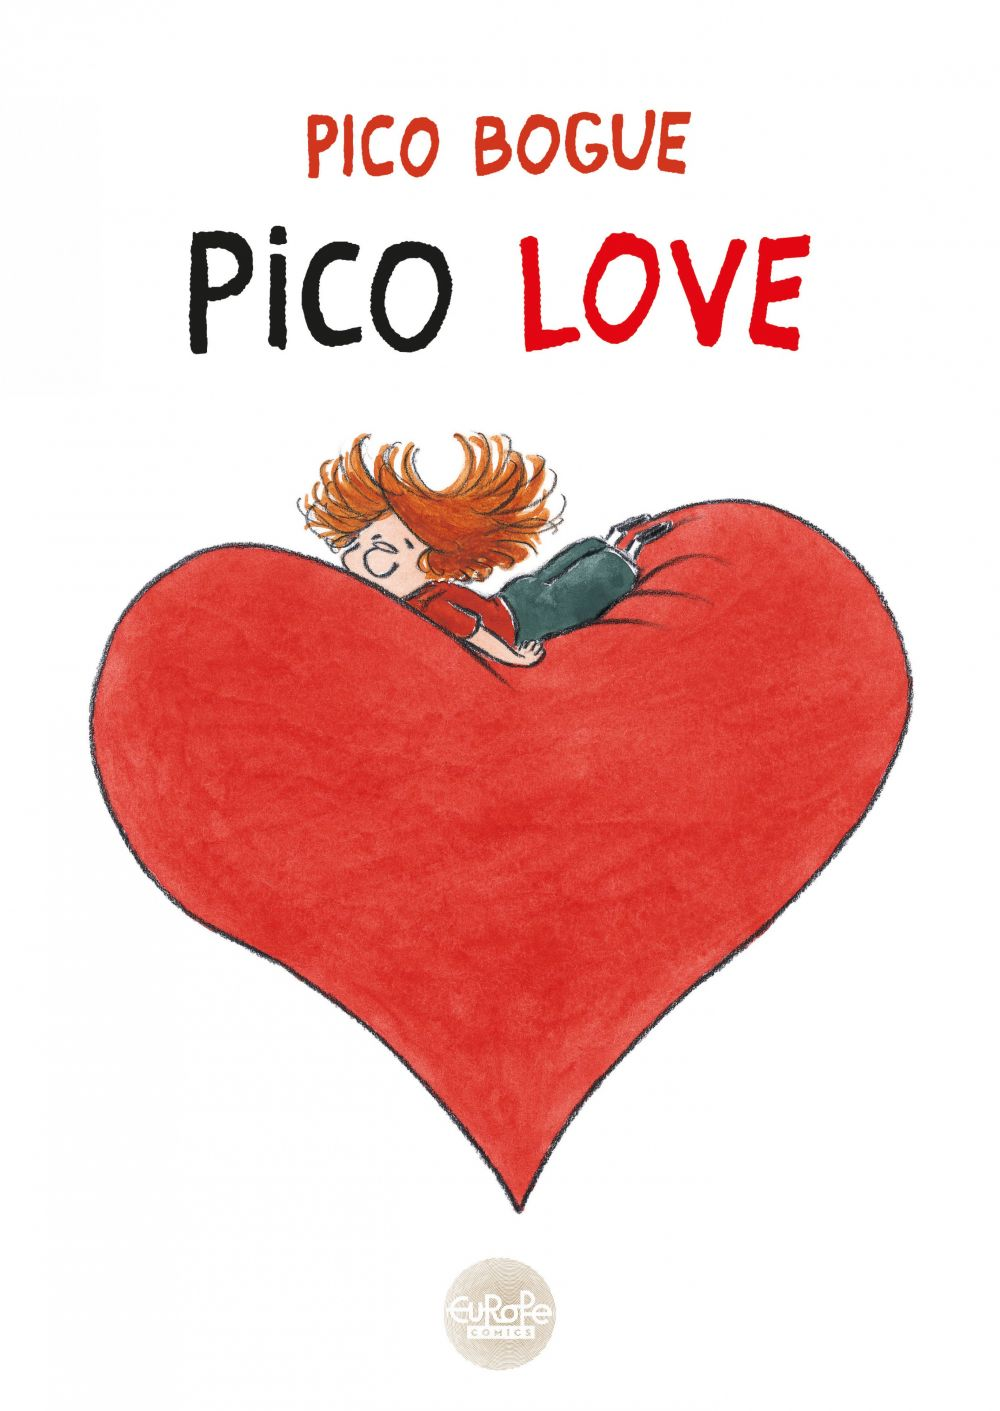 Pico Bogue - Volume 3 - Pico Love